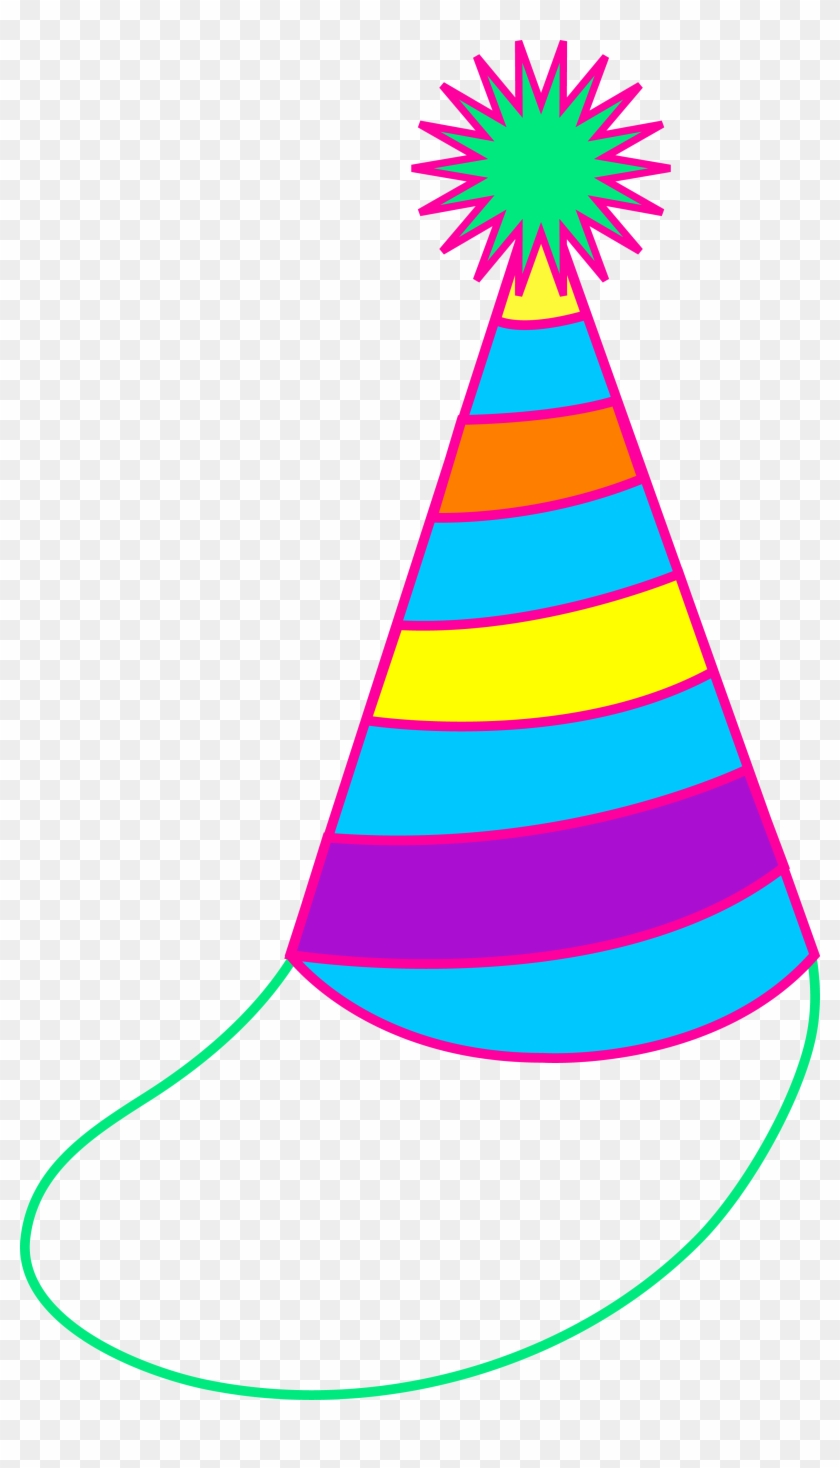 Birthday Hat Clipart Free Images - Birthday Party Hat Cartoon #30240